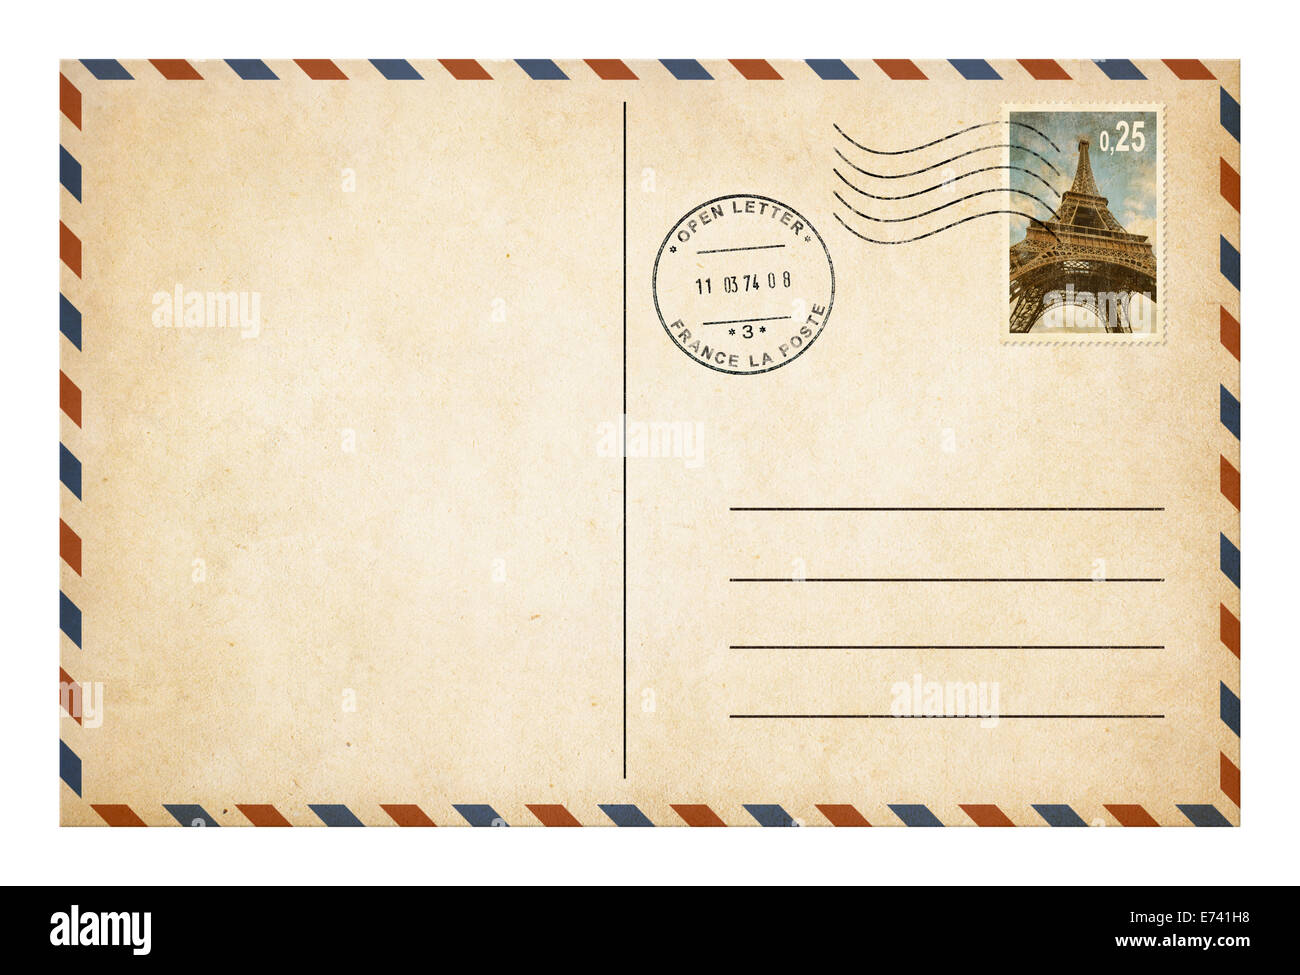 Old style postcard or envelope with postage stamp isolated - Stock Image